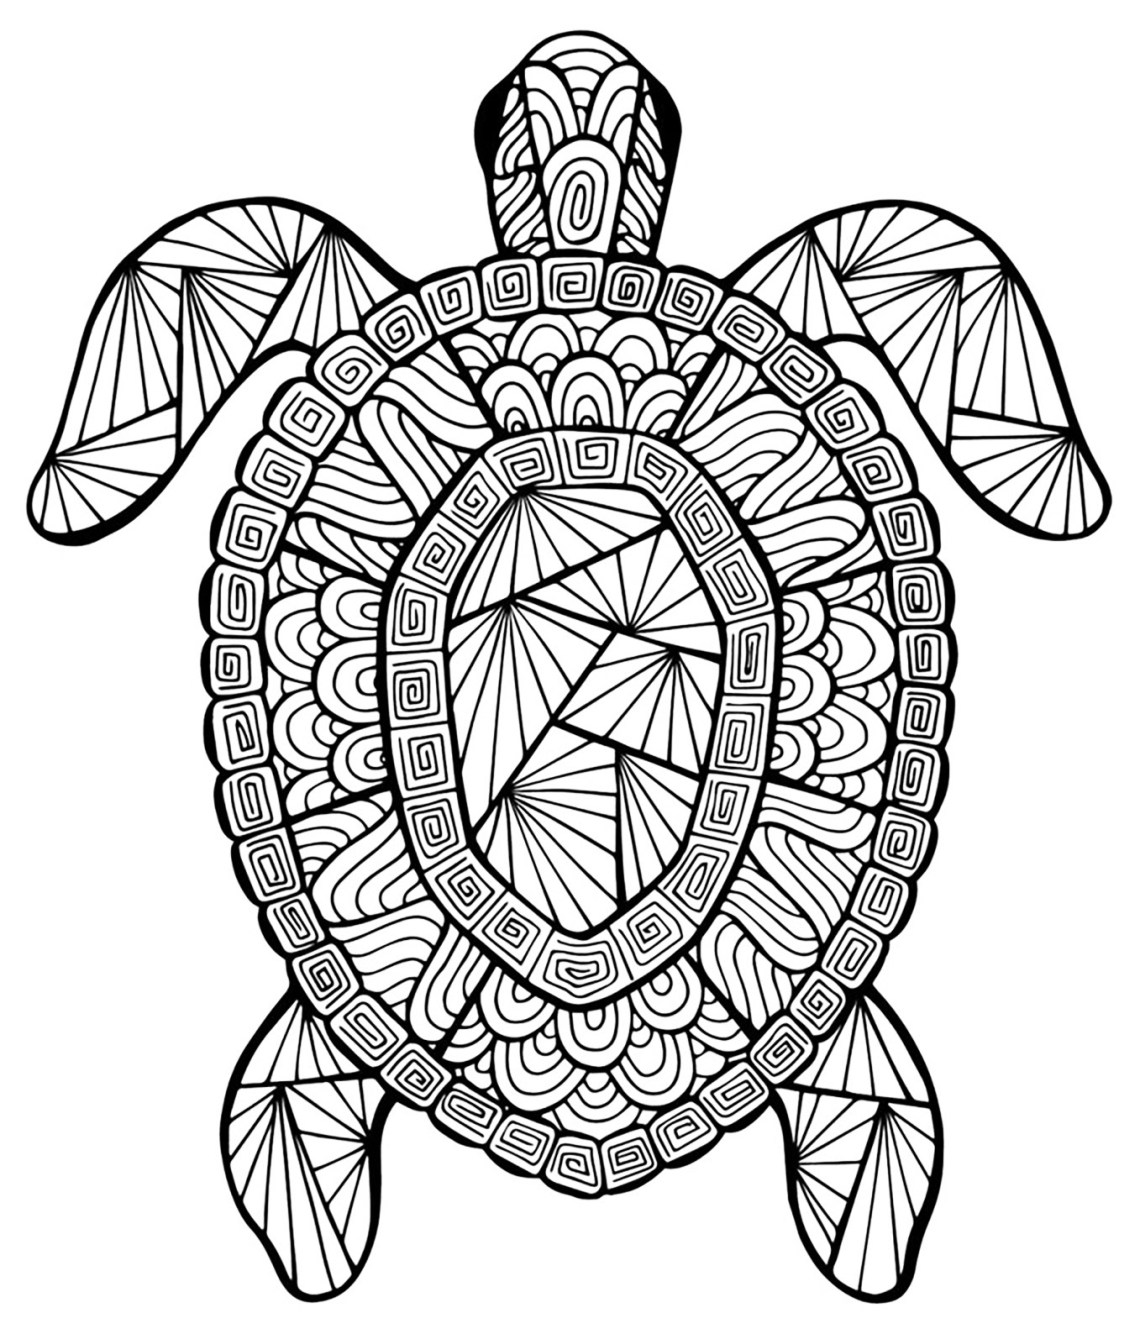 Incredible turtle | Animals - Coloring pages for adults ... | coloring pictures for adults animals